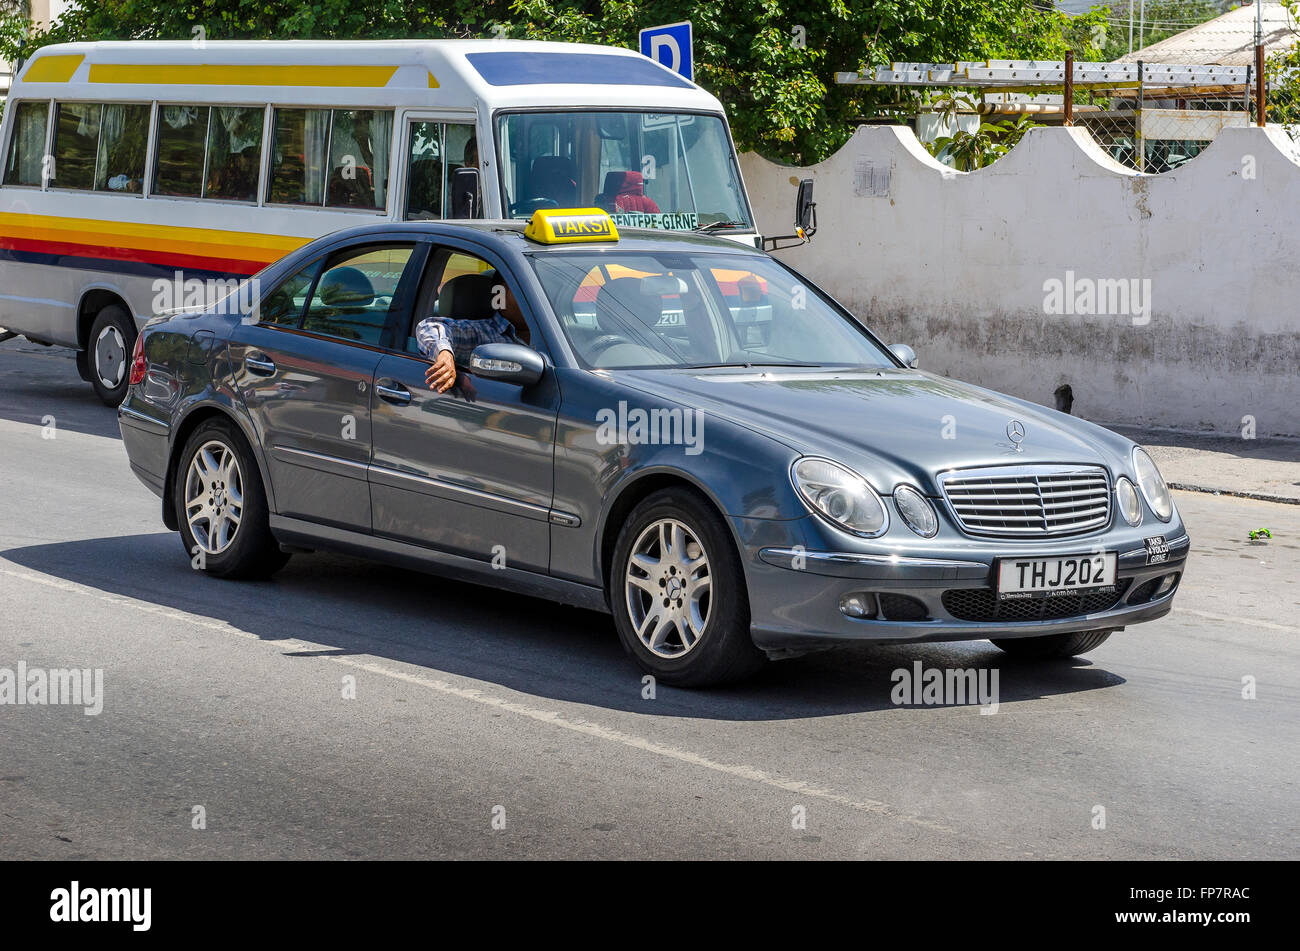 mercedes taxi driving along a road in the city of kyrenia northern stock photo 99746260 alamy. Black Bedroom Furniture Sets. Home Design Ideas